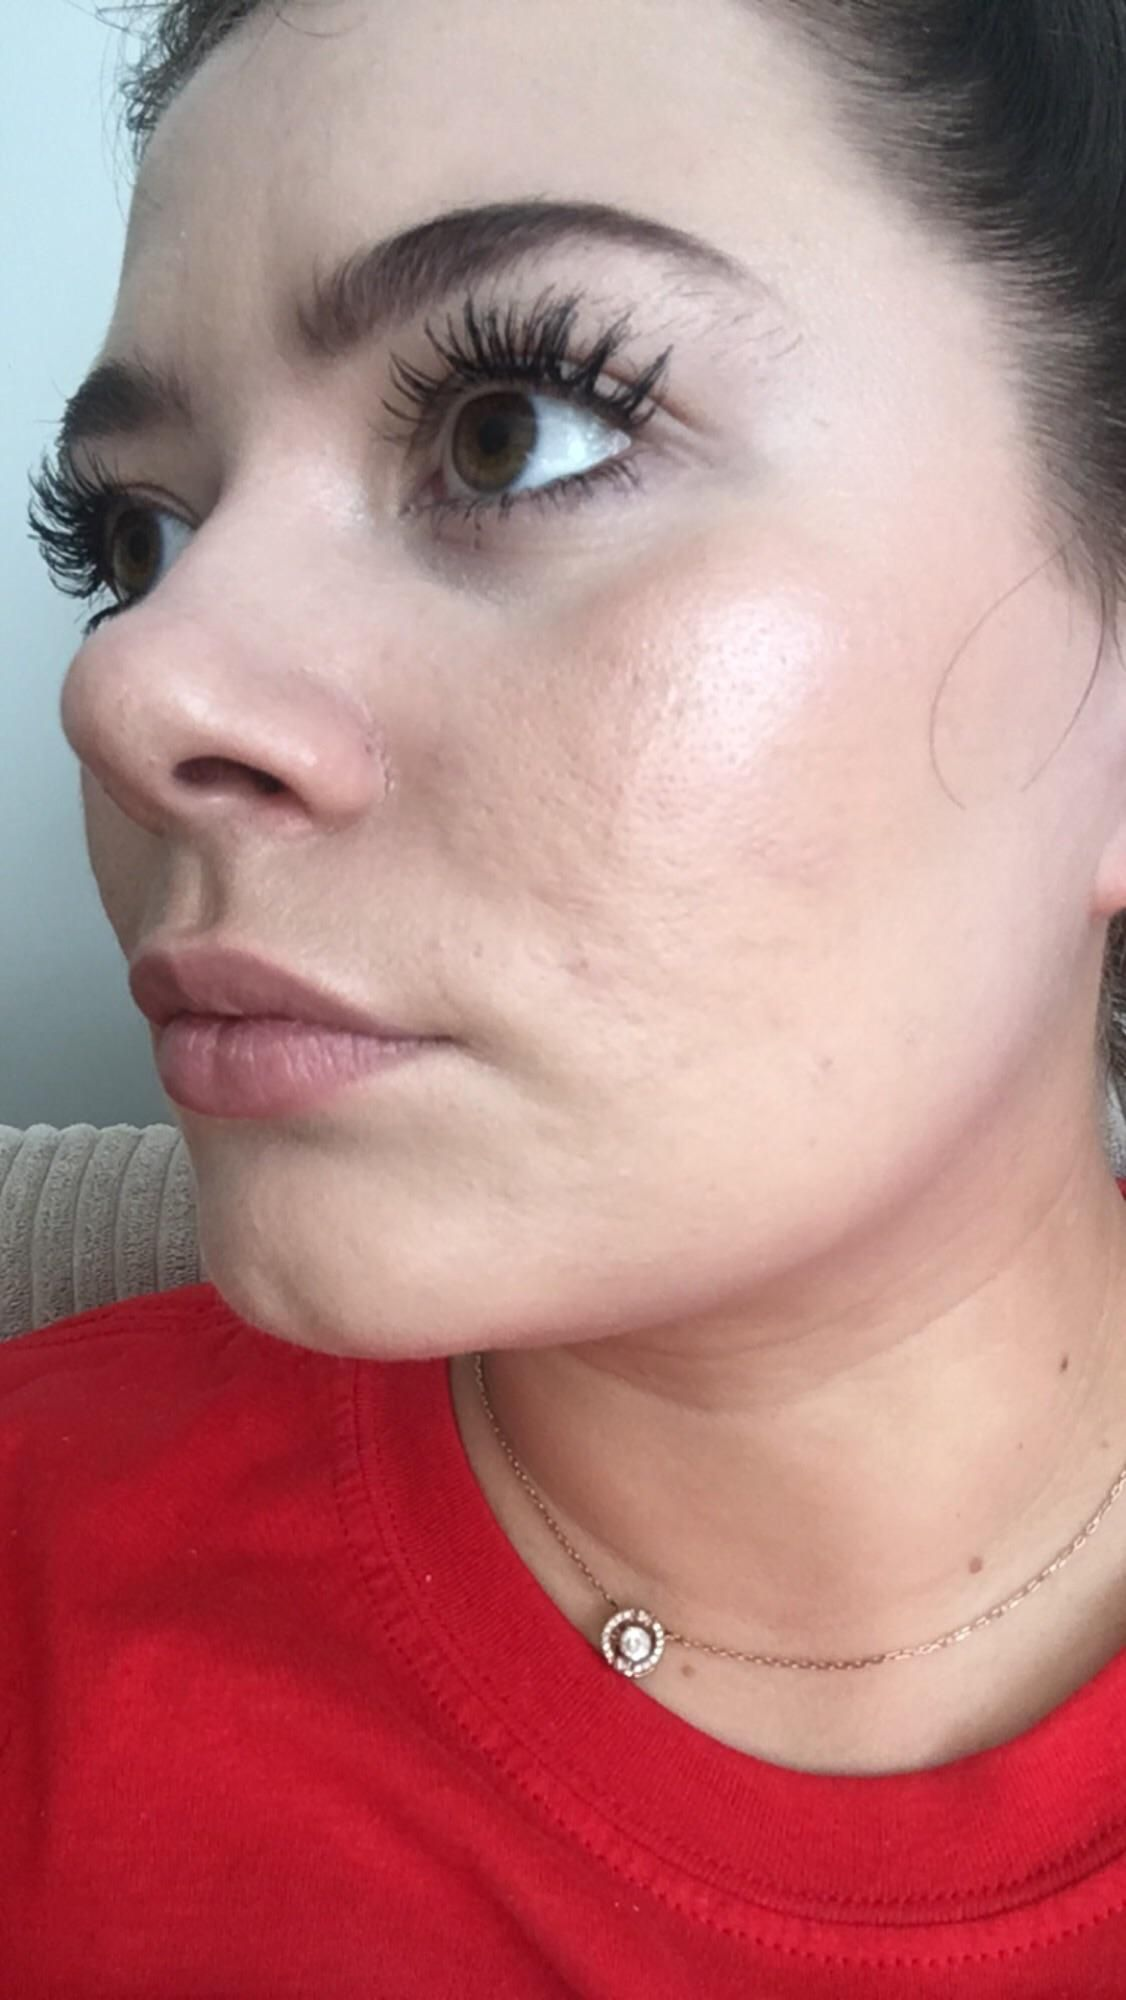 [Skin Concerns] after wearing makeup for only two hours it